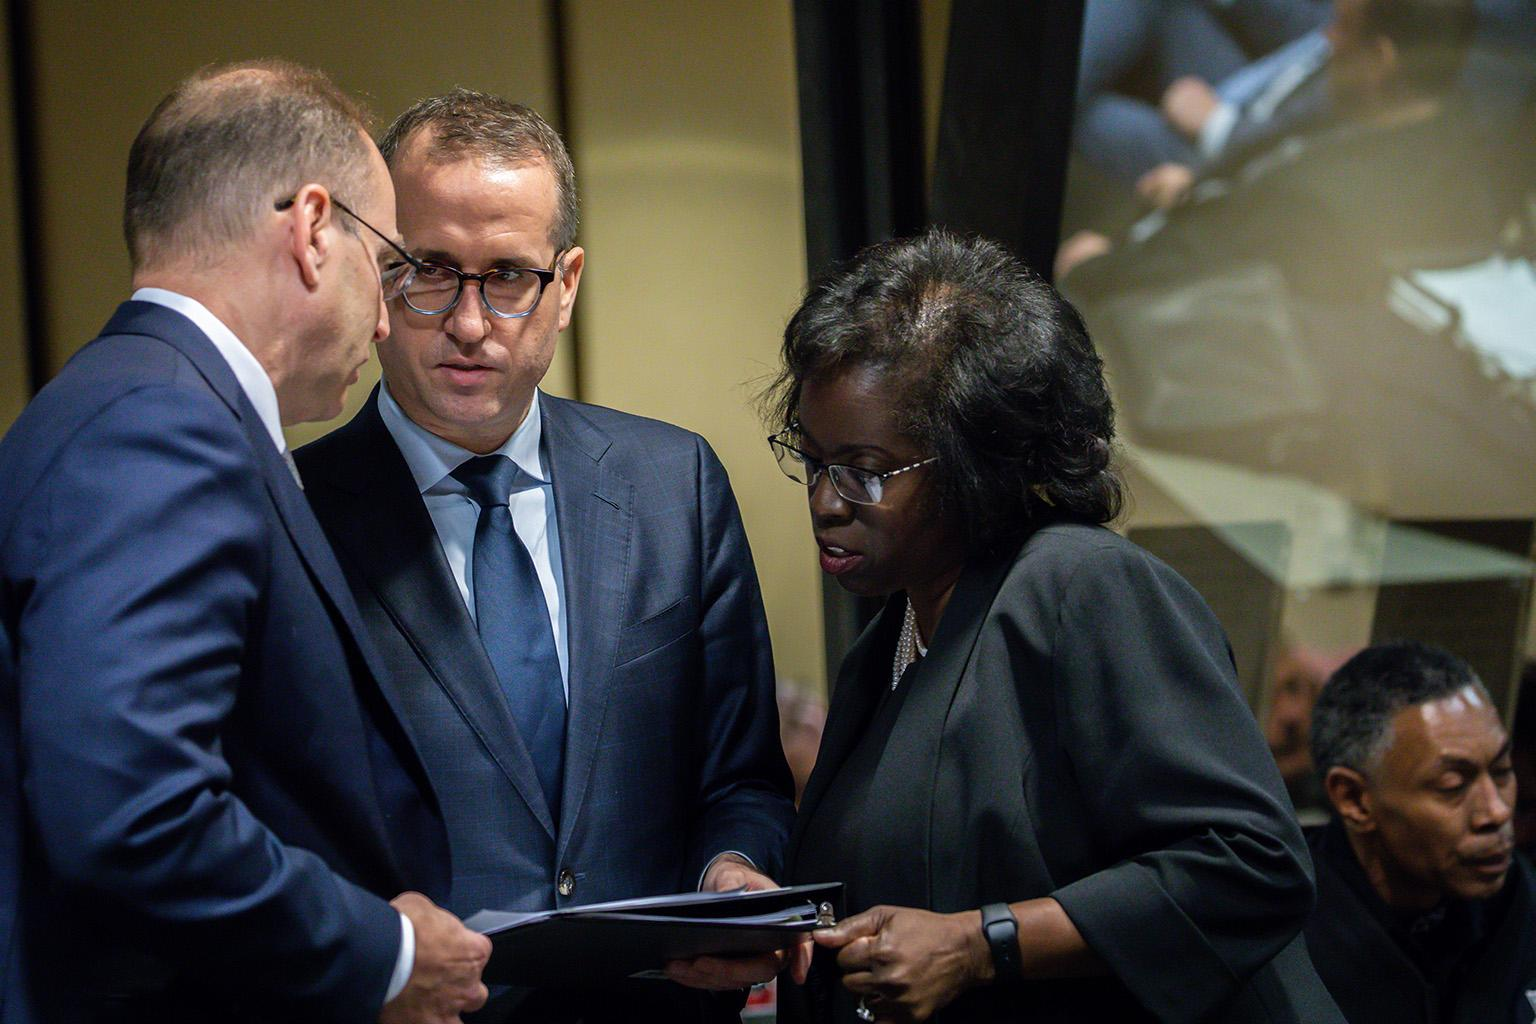 Special prosecutor Patricia Brown Holmes, right, consults with assistant special prosecutor Ron Safer, left, and Brian Watson, center, on Thursday, Dec. 6, 2018. (Zbigniew Bzdak / Chicago Tribune / Pool)